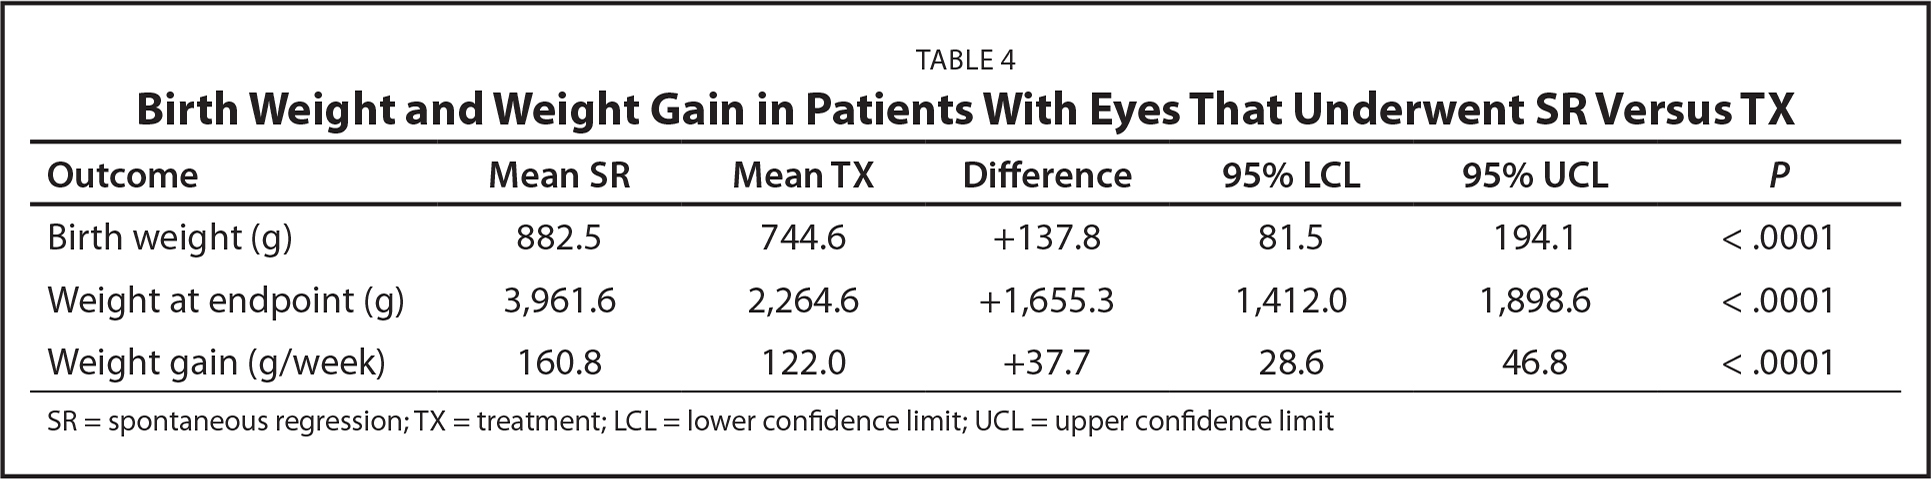 Birth Weight and Weight Gain in Patients With Eyes That Underwent SR Versus TX